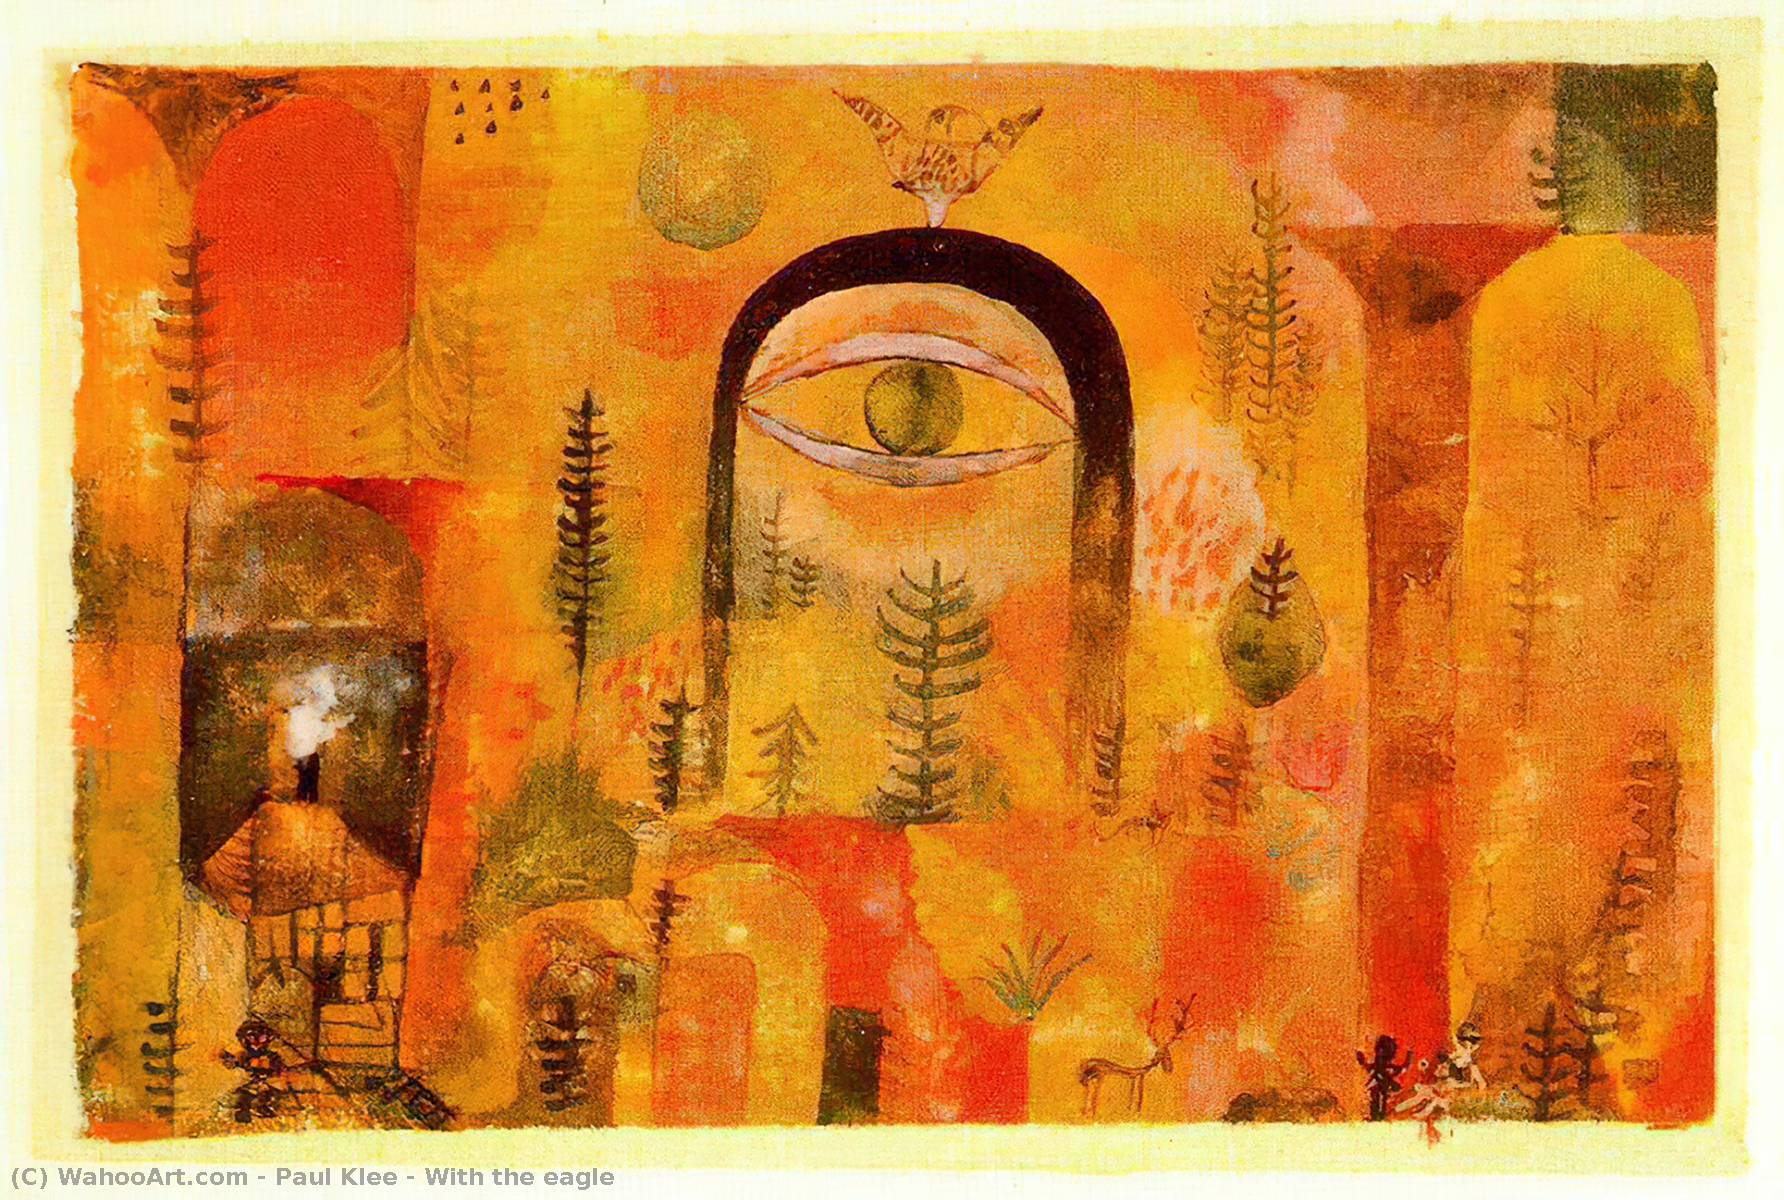 https://en.wahooart.com/Art.nsf/O/8LT4AG/$File/Paul-Klee-With-the-eagle.JPG